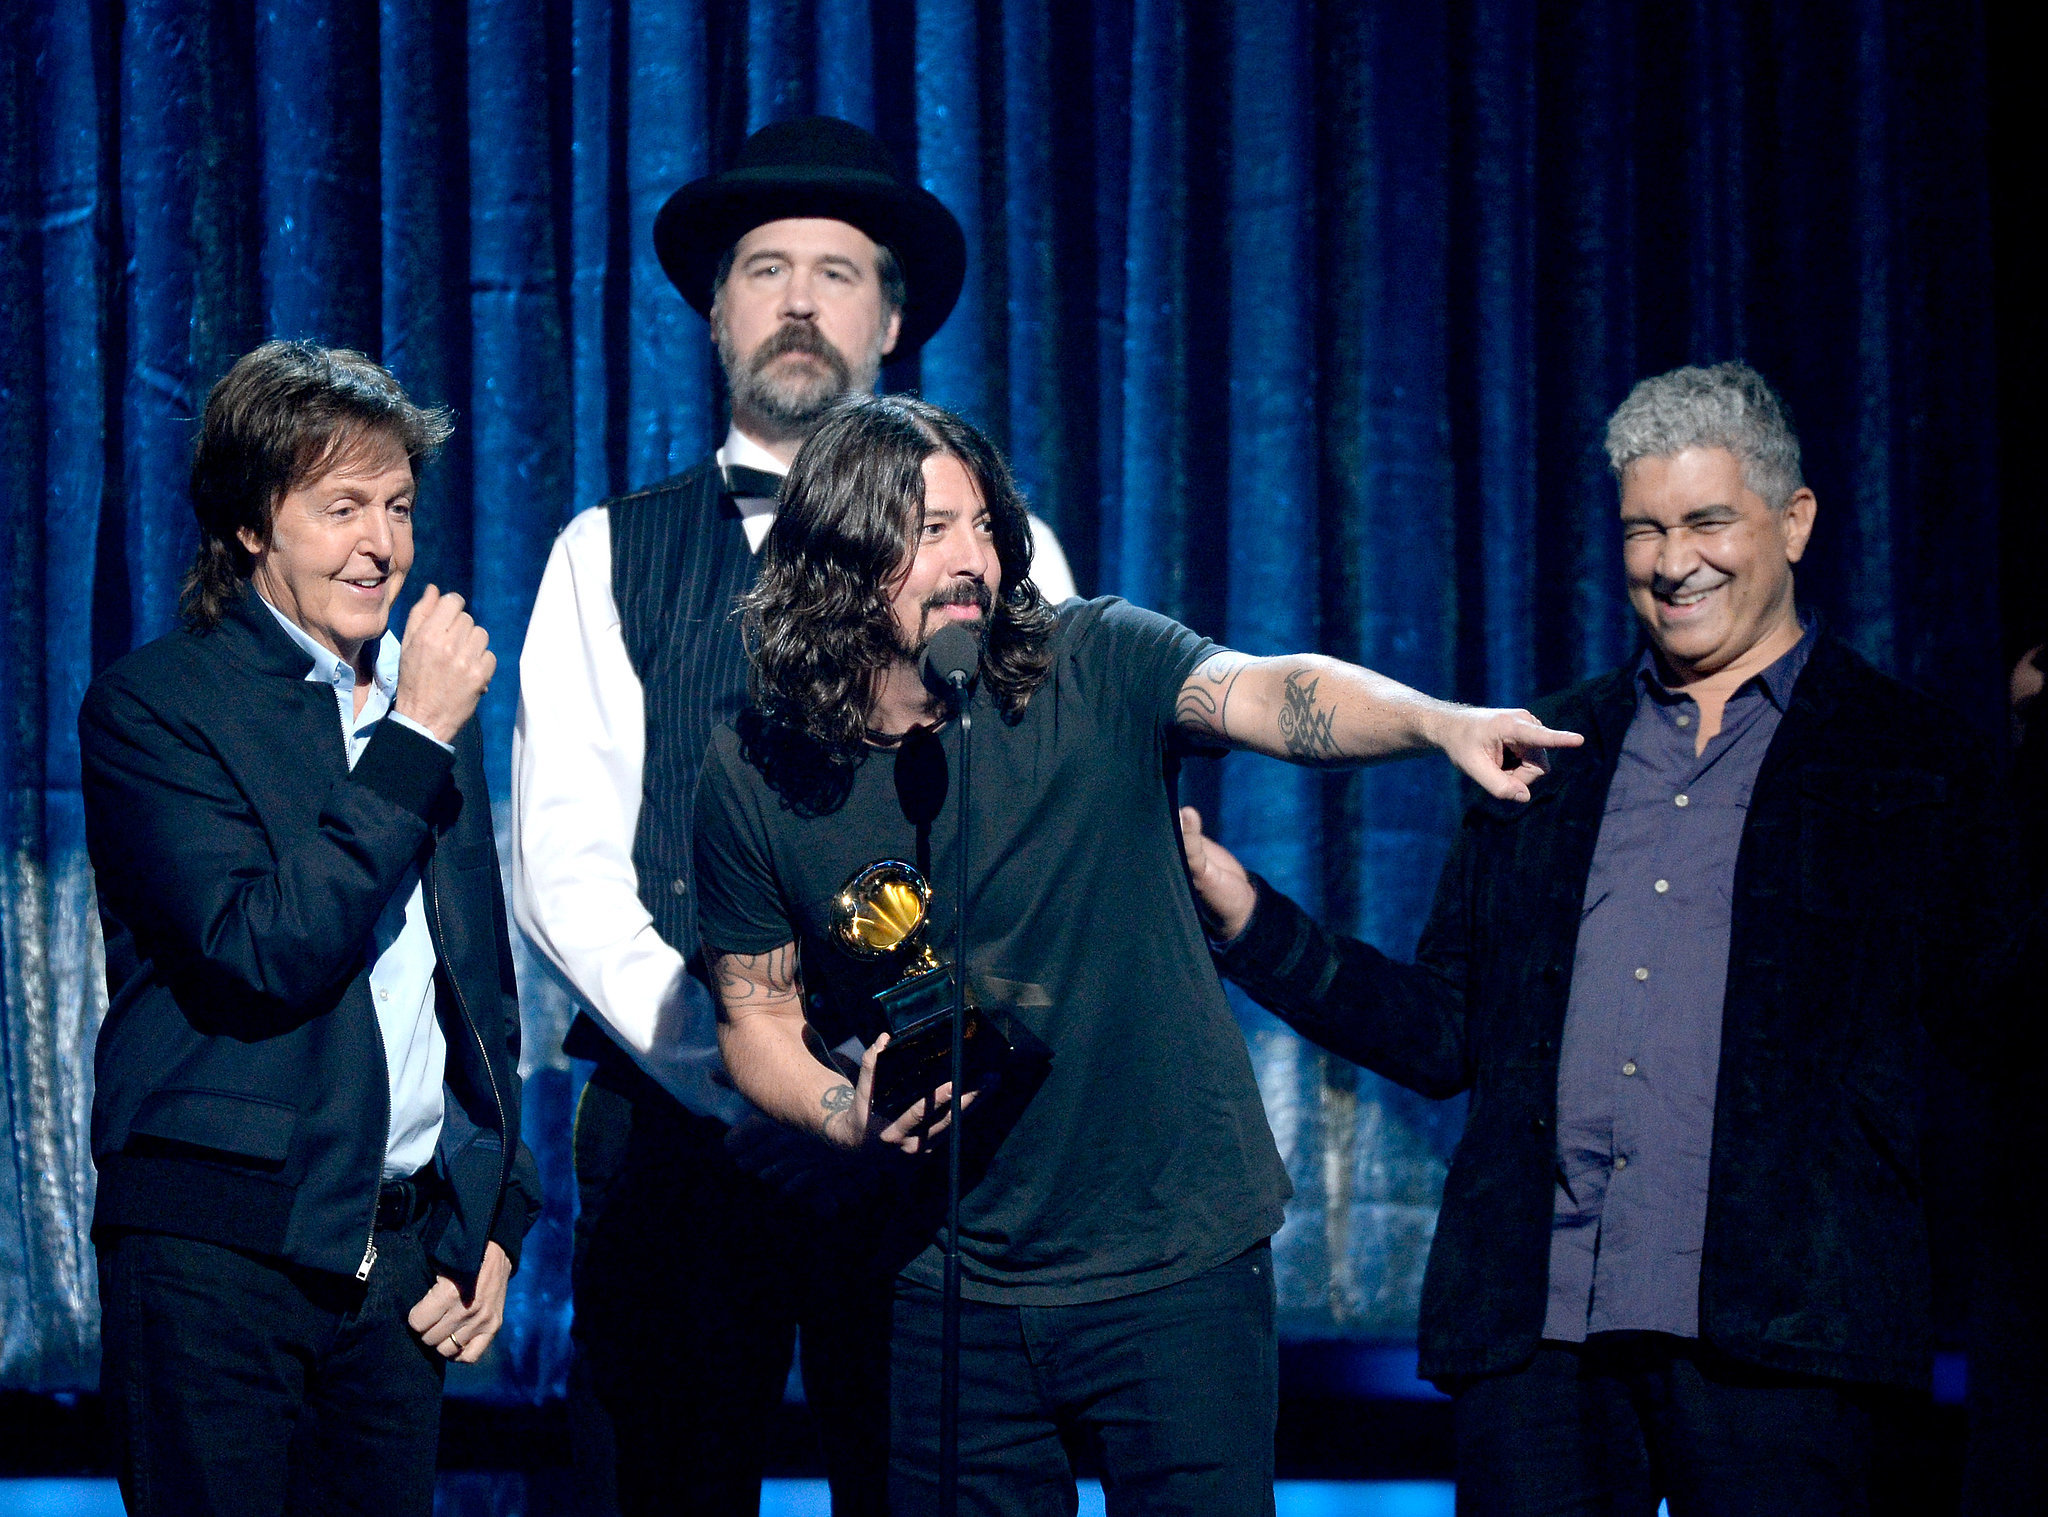 Dave Grohl, Paul McCartney, Krist Novoselic, and Pat Smear had fun accepting their award.